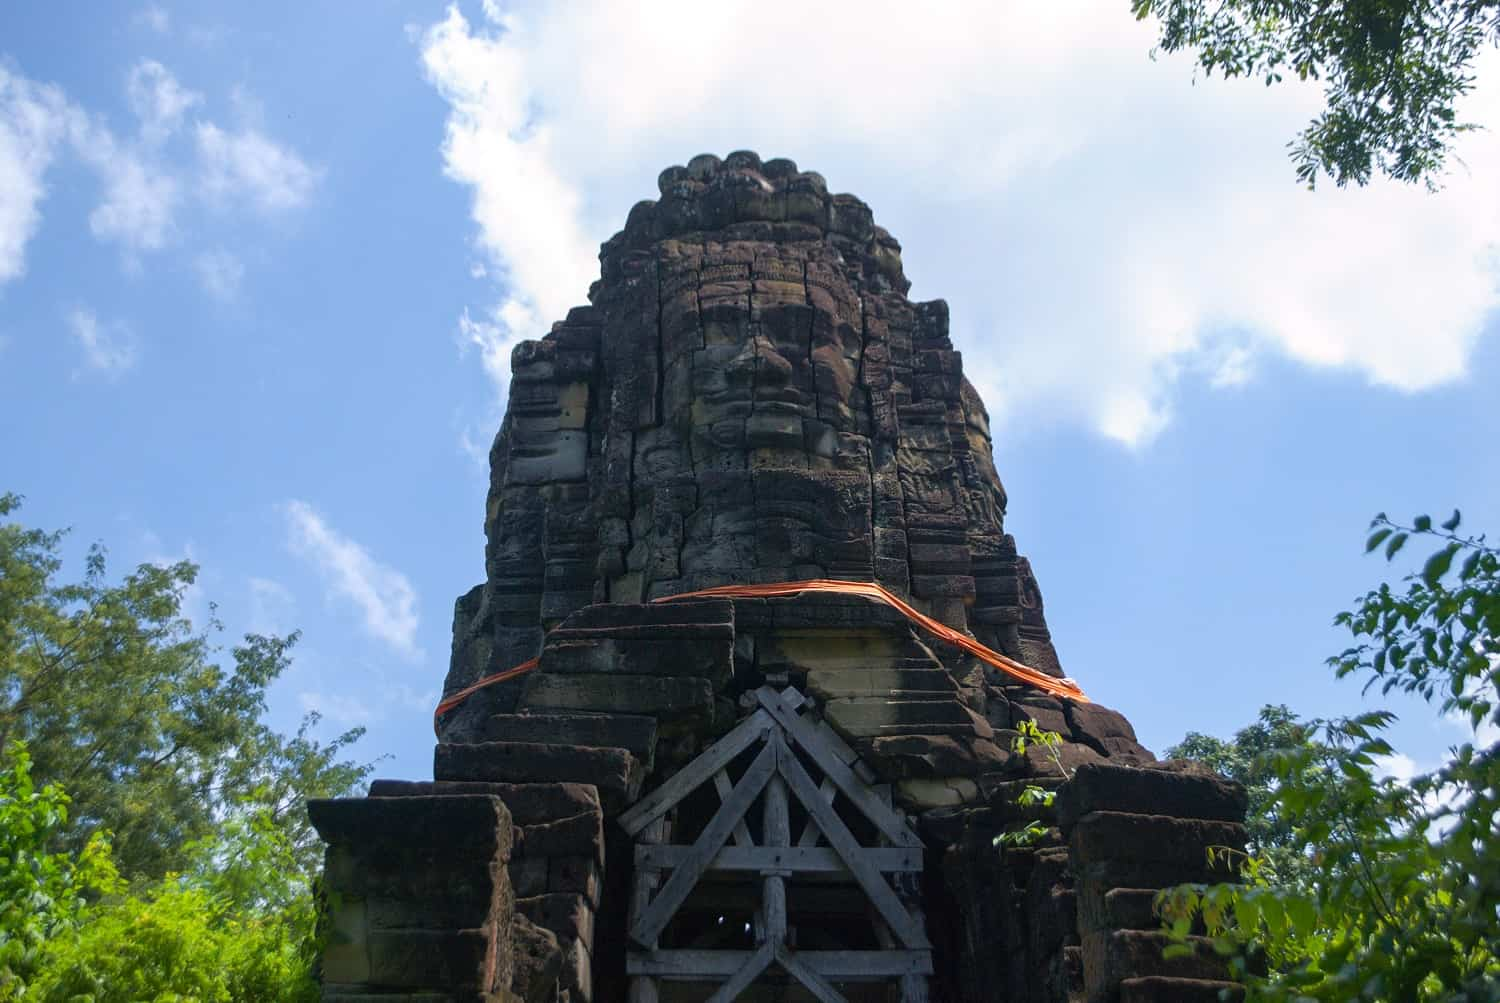 Face tower, Banteay Chhmar, Cambodia